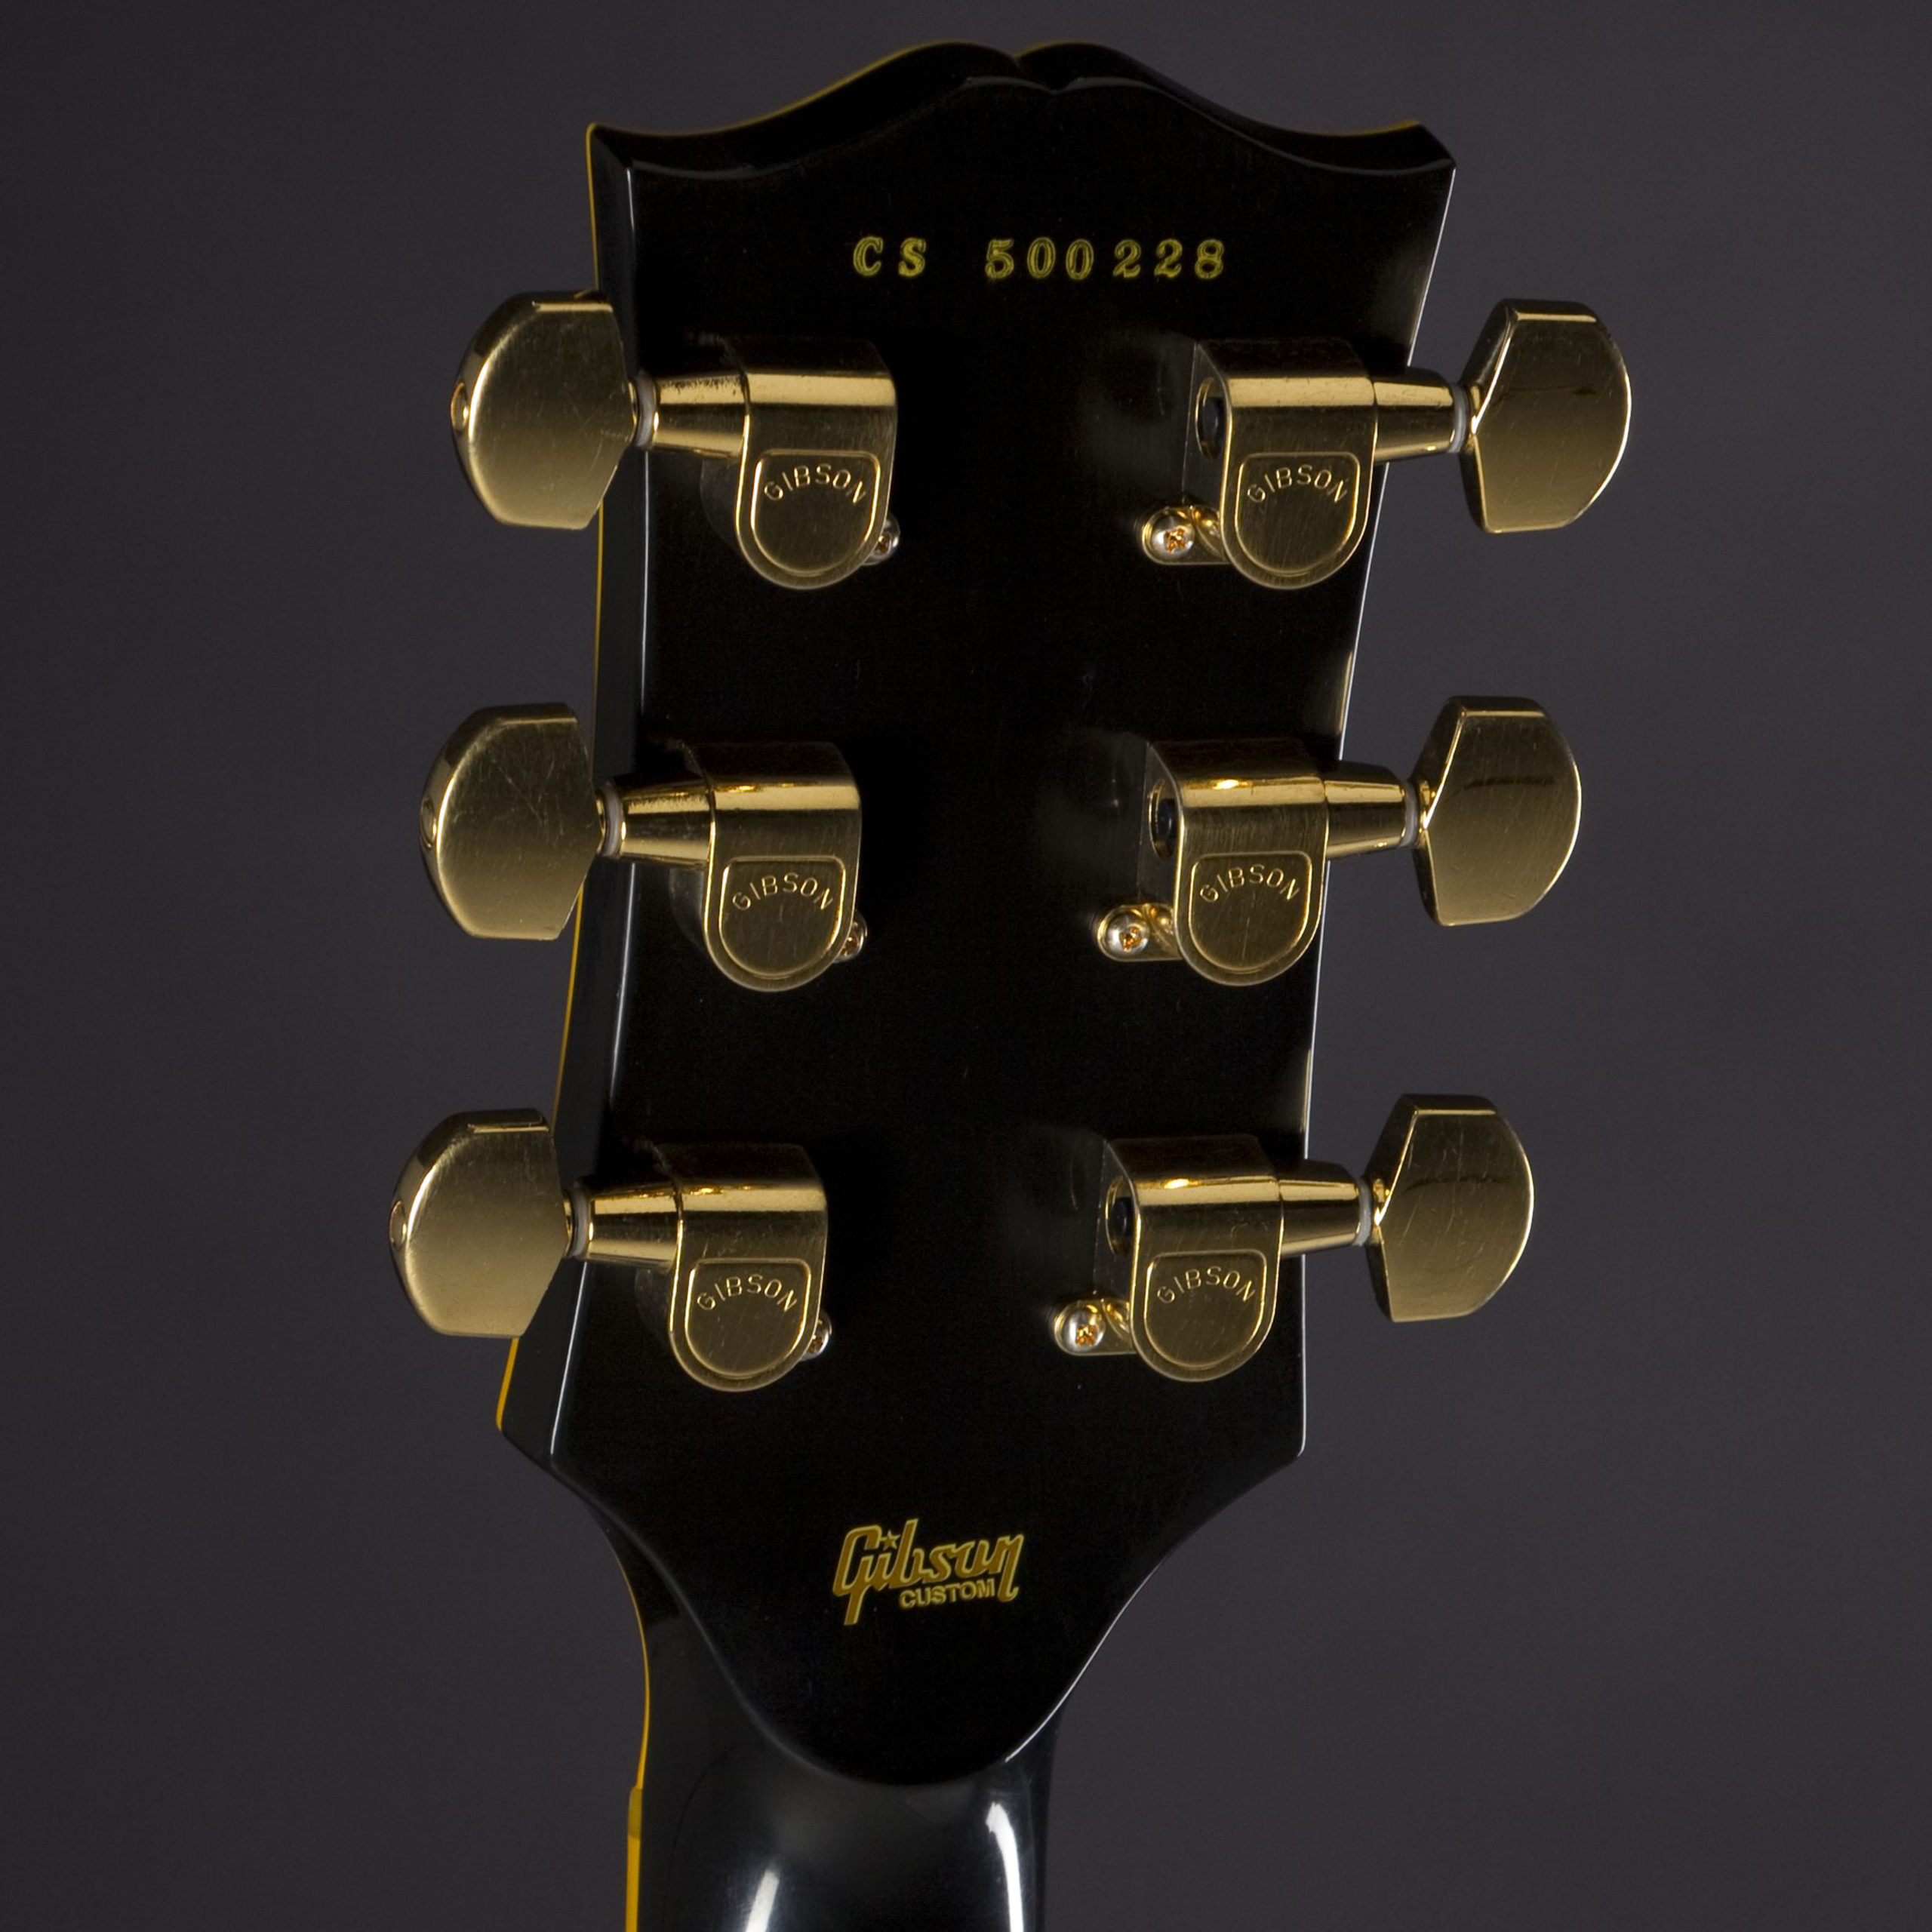 GIBSON 1974 Les Paul Custom Reissue Ebony #CS500228 Kopfplatte